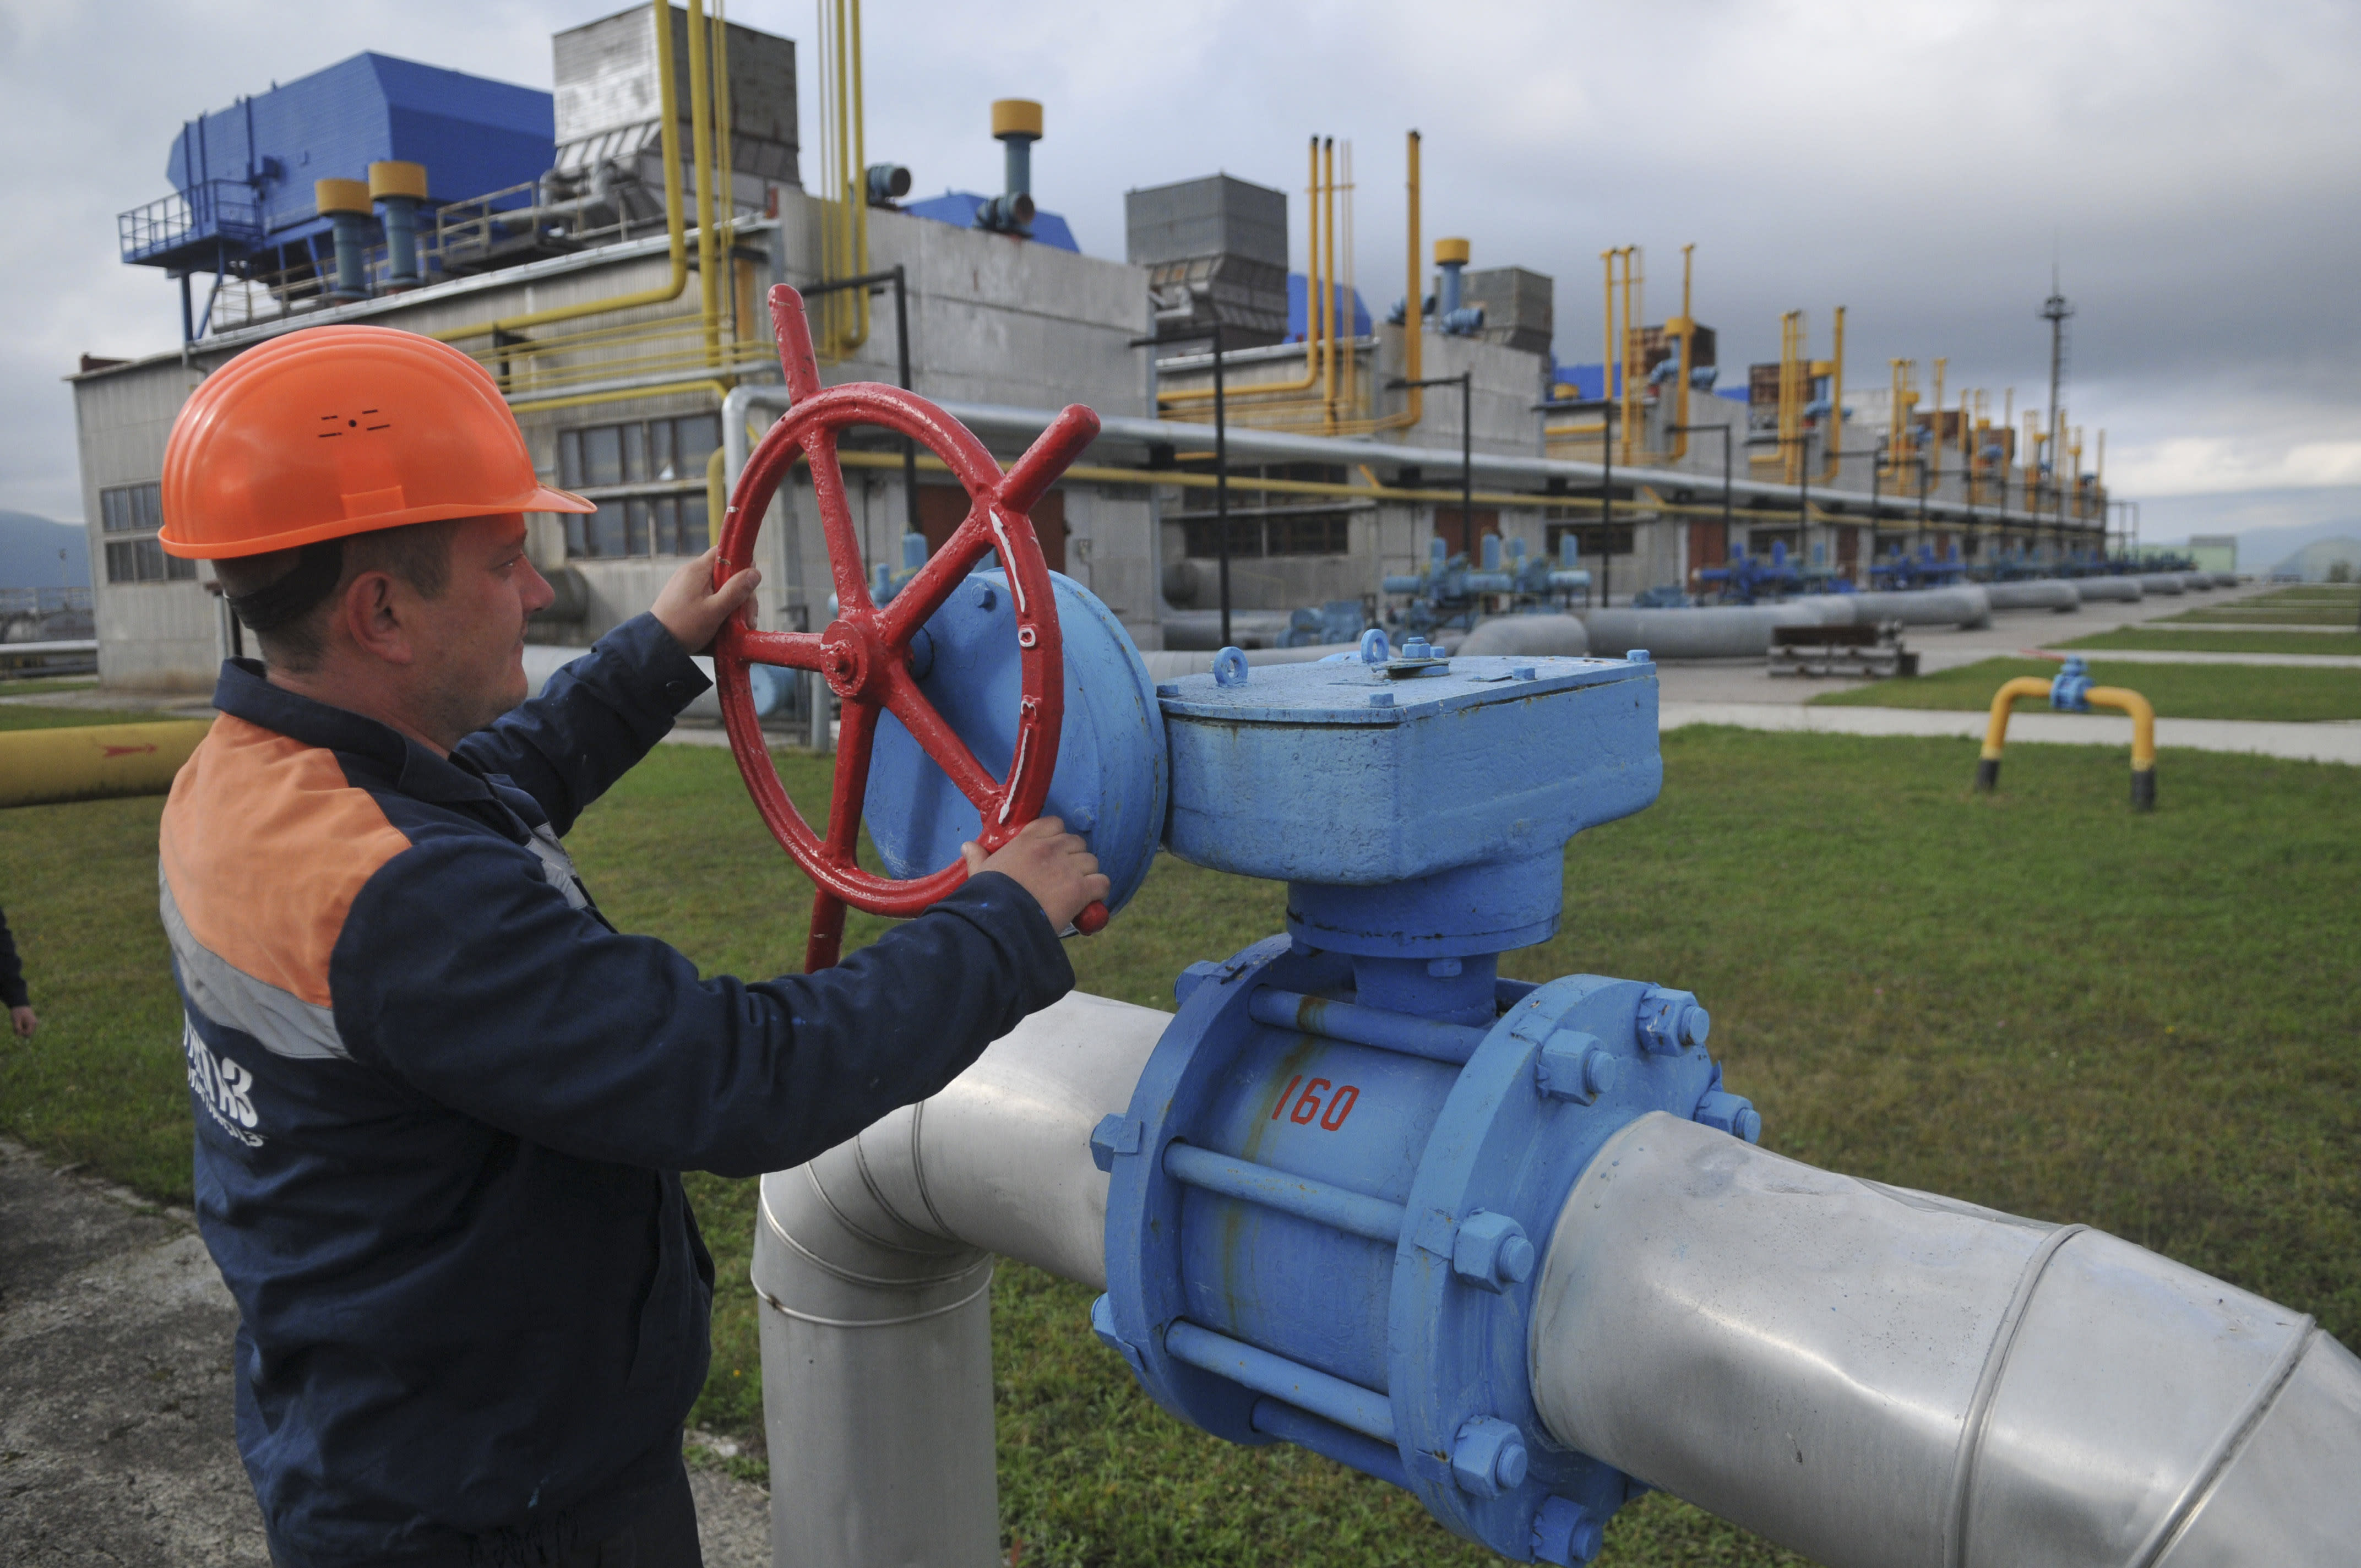 Ukraine stops buying Russian gas, closes airspace